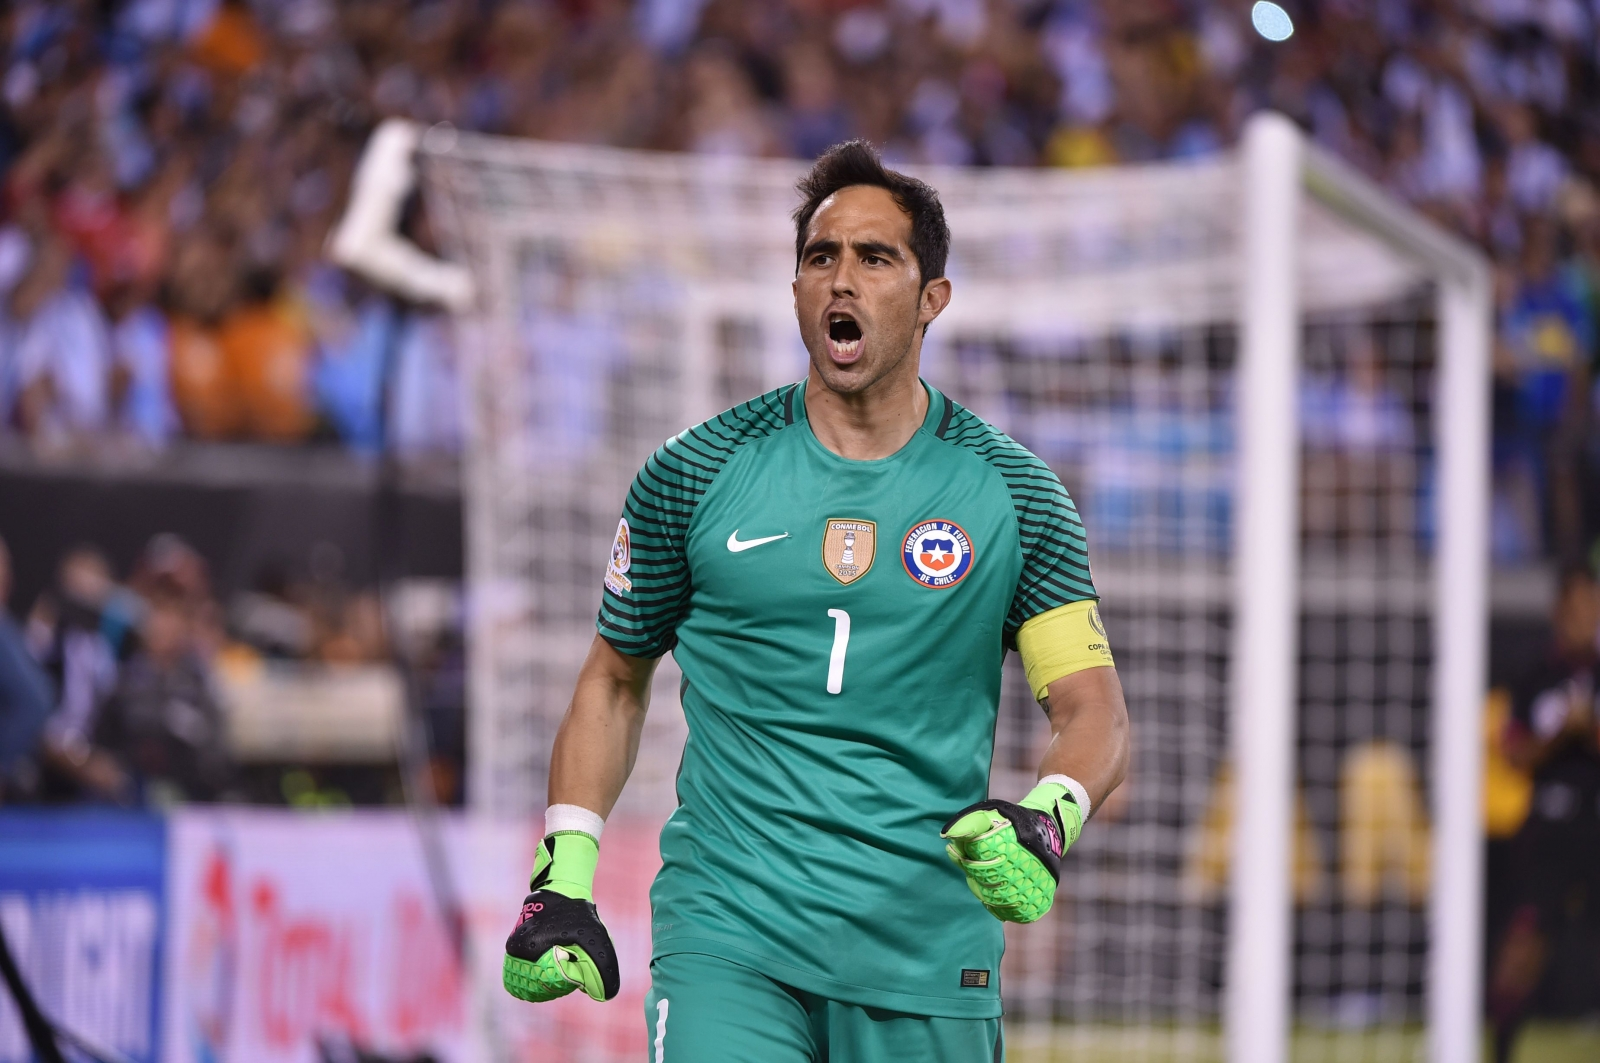 Manchester City Club confirm Claudio Bravo signing as Joe Hart